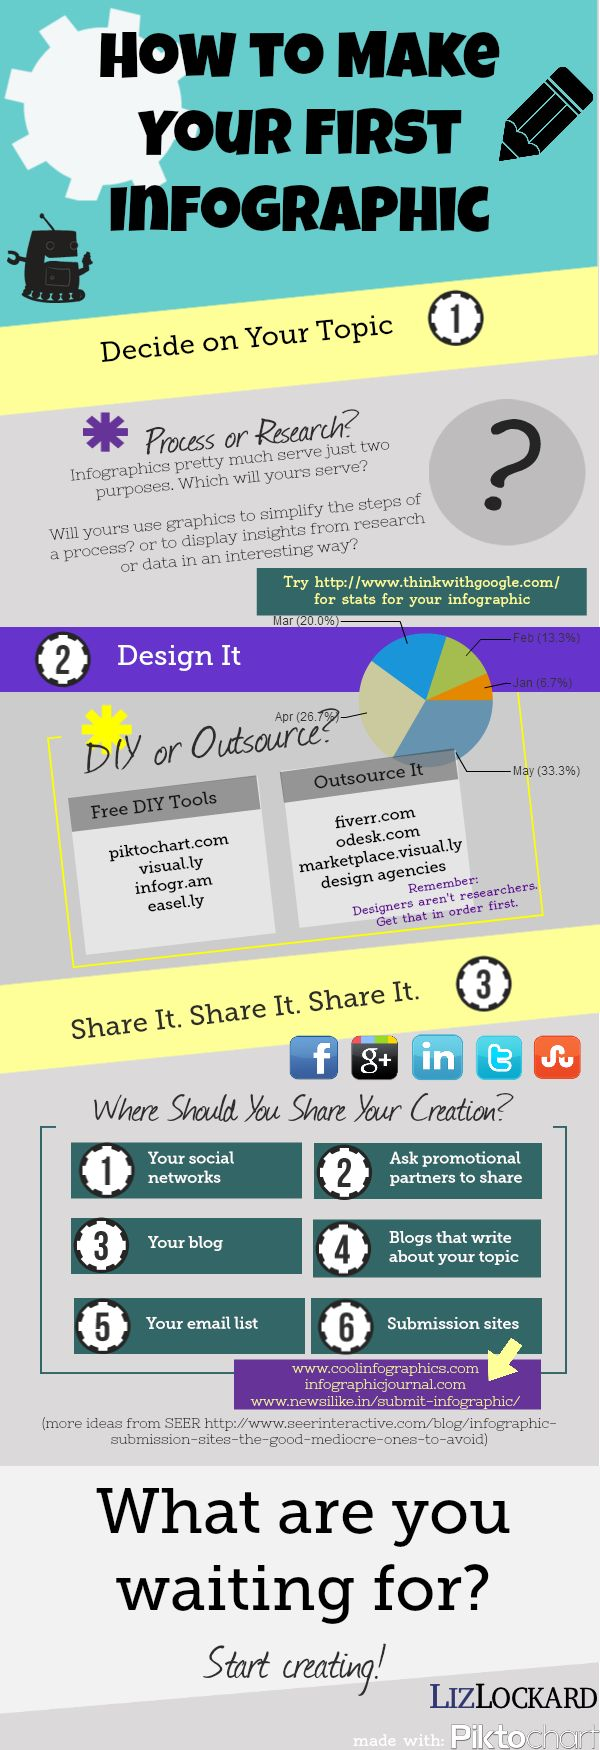 Easy 3 step process for creating your first infographic http://www.lizlockard.com/create-your-first-infographic/